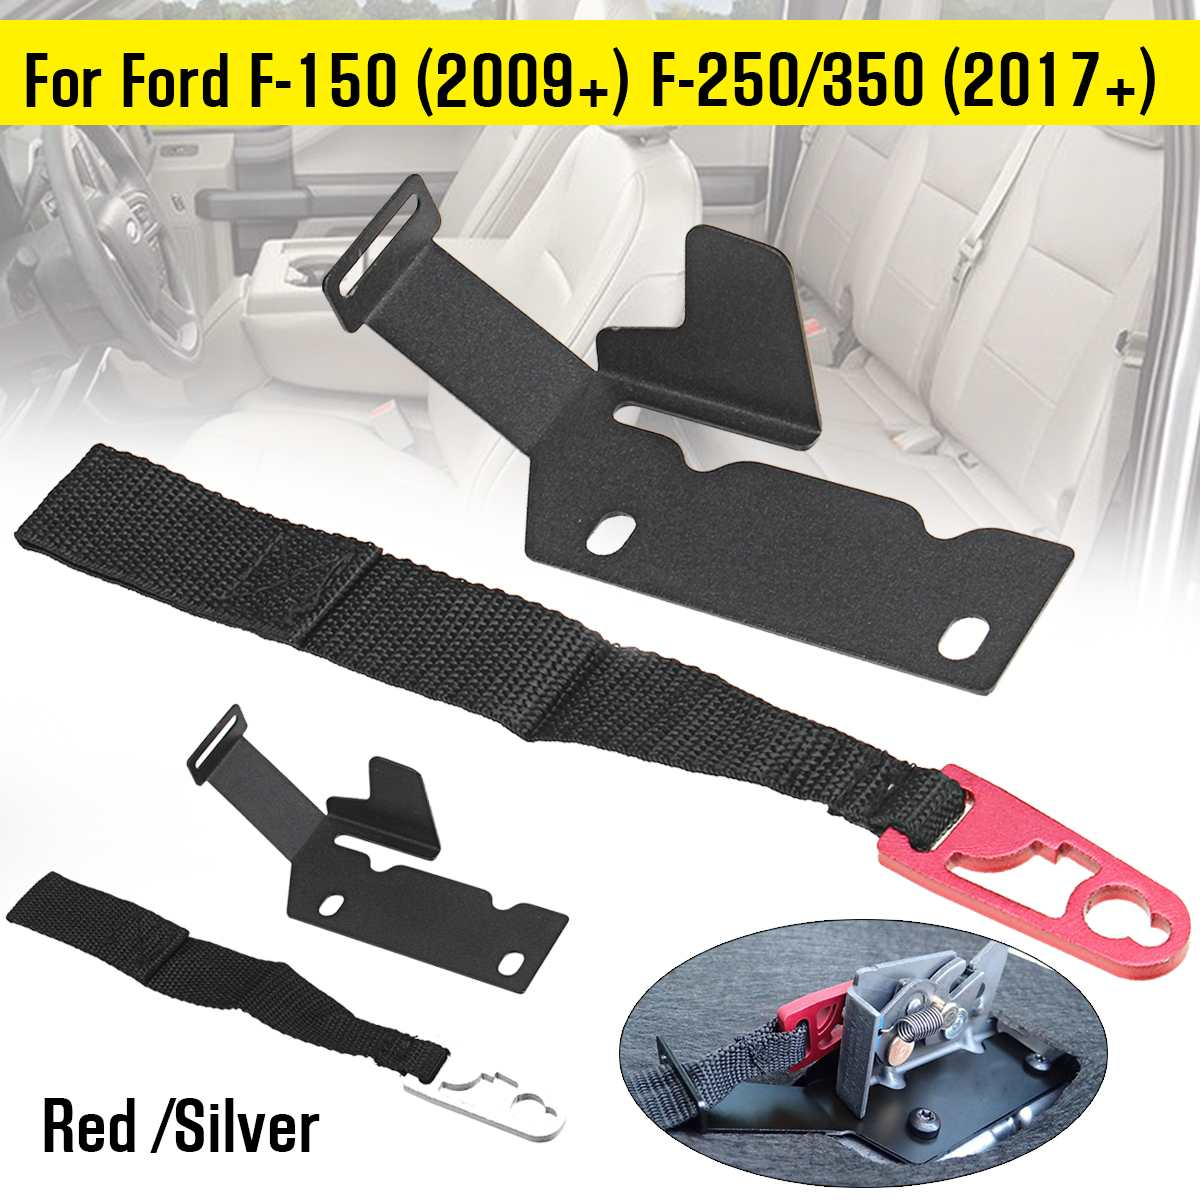 Car Truck Rear Seat Release Kit Strap For Ford F-150 F-250 F-350 Raptor Supercab Supercrew